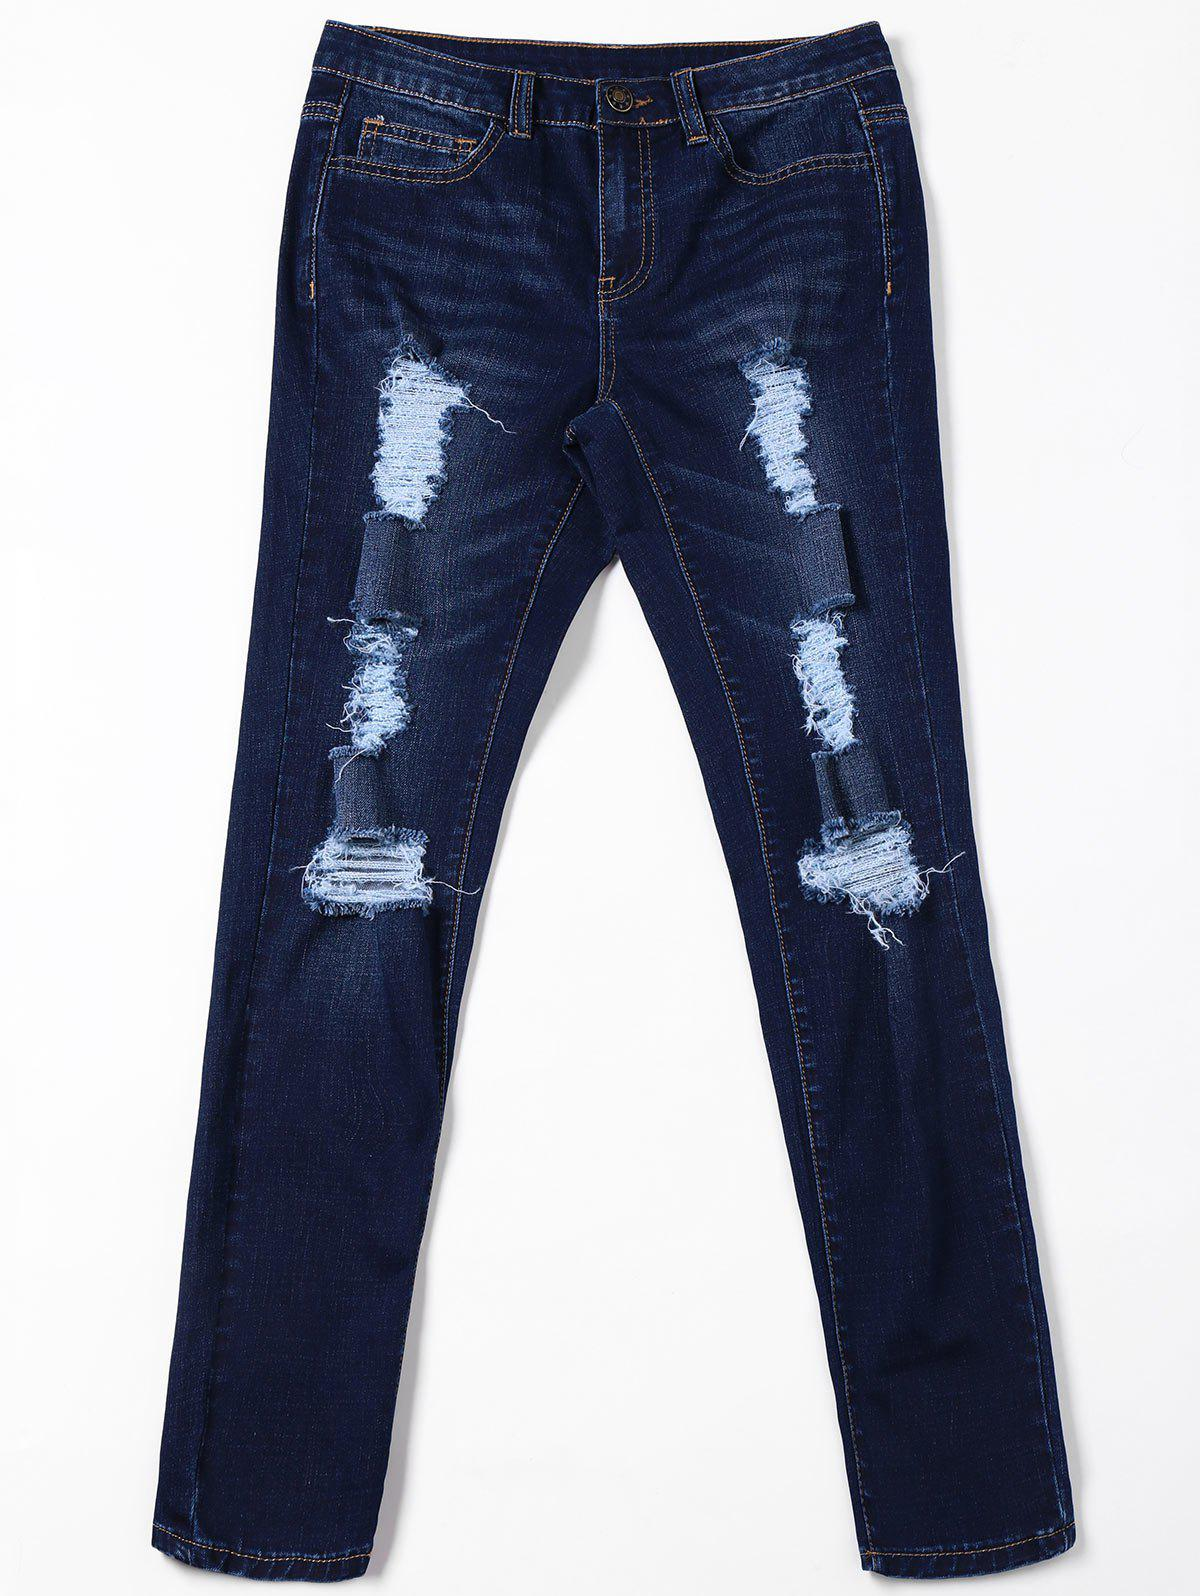 Ripped Cat's Whisker Jeans with Pockets - BLACK BLUE M